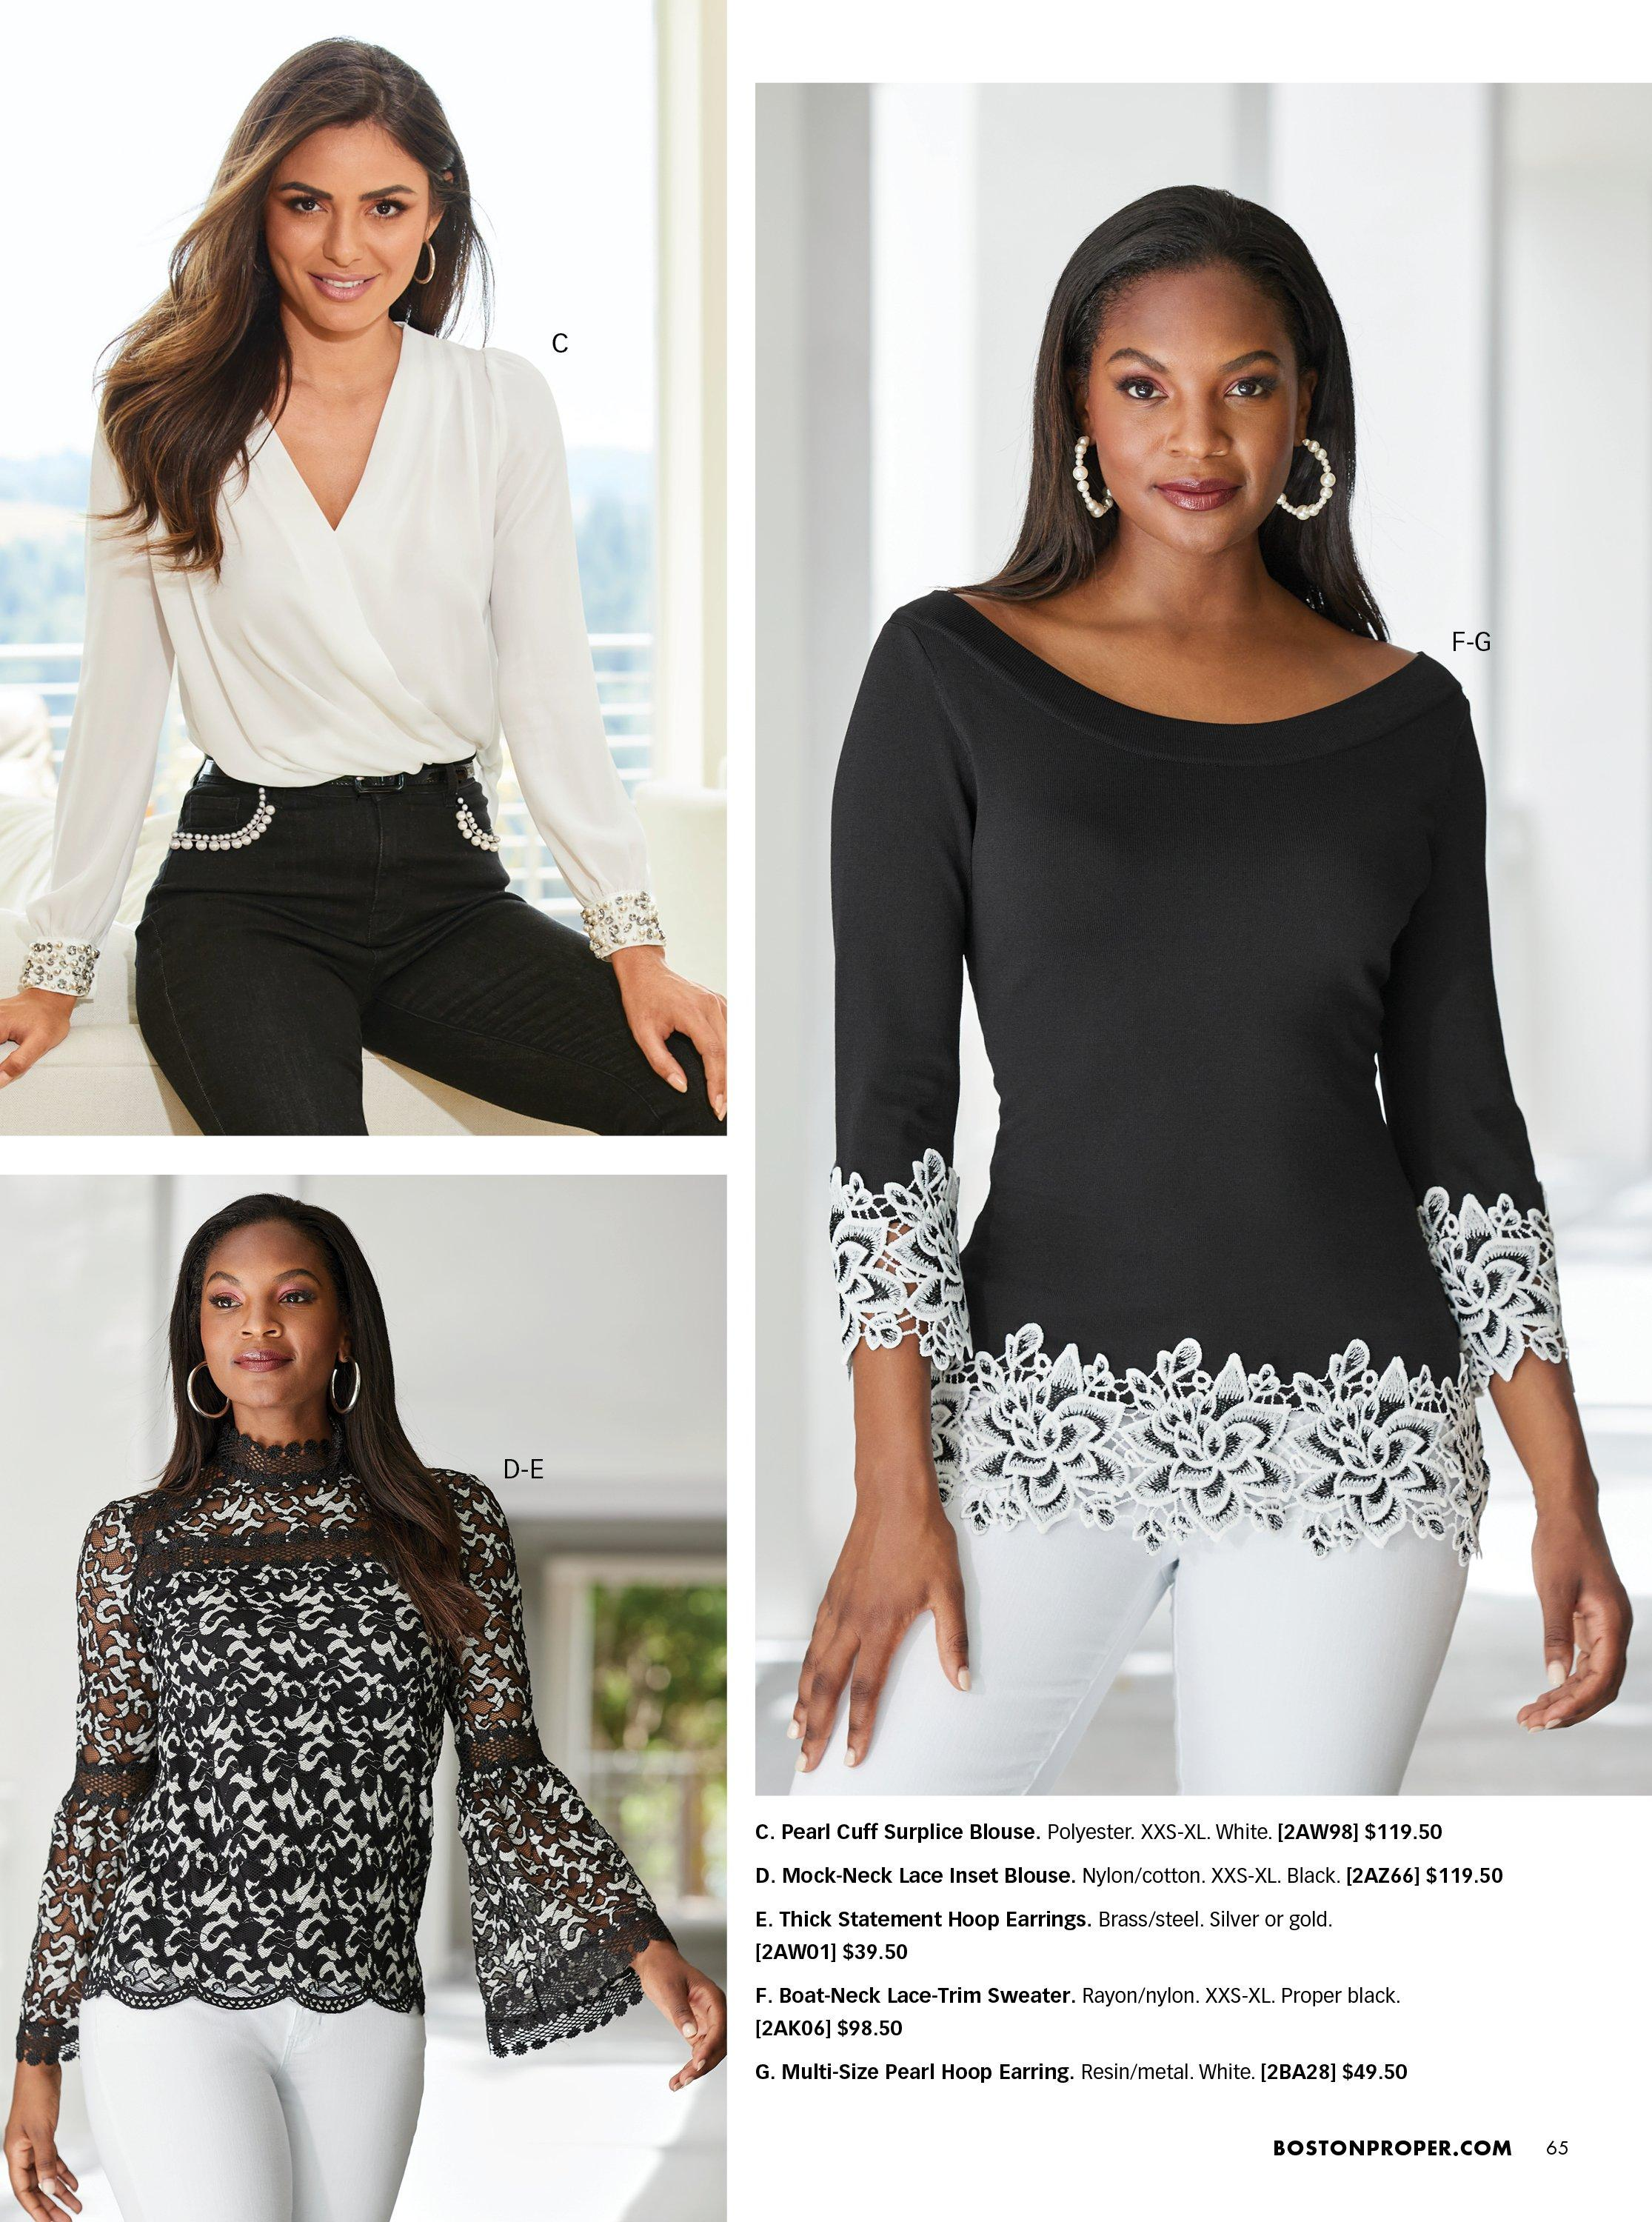 top left model wearing a white surplice top with jewel embellished cuffs and pearl embellished black jeans. bottom left model wearing a black and white lace high-neck long-sleeve flare-sleeve top and white jeans. right model wearing a black sweater with white lace trim and white jeans.